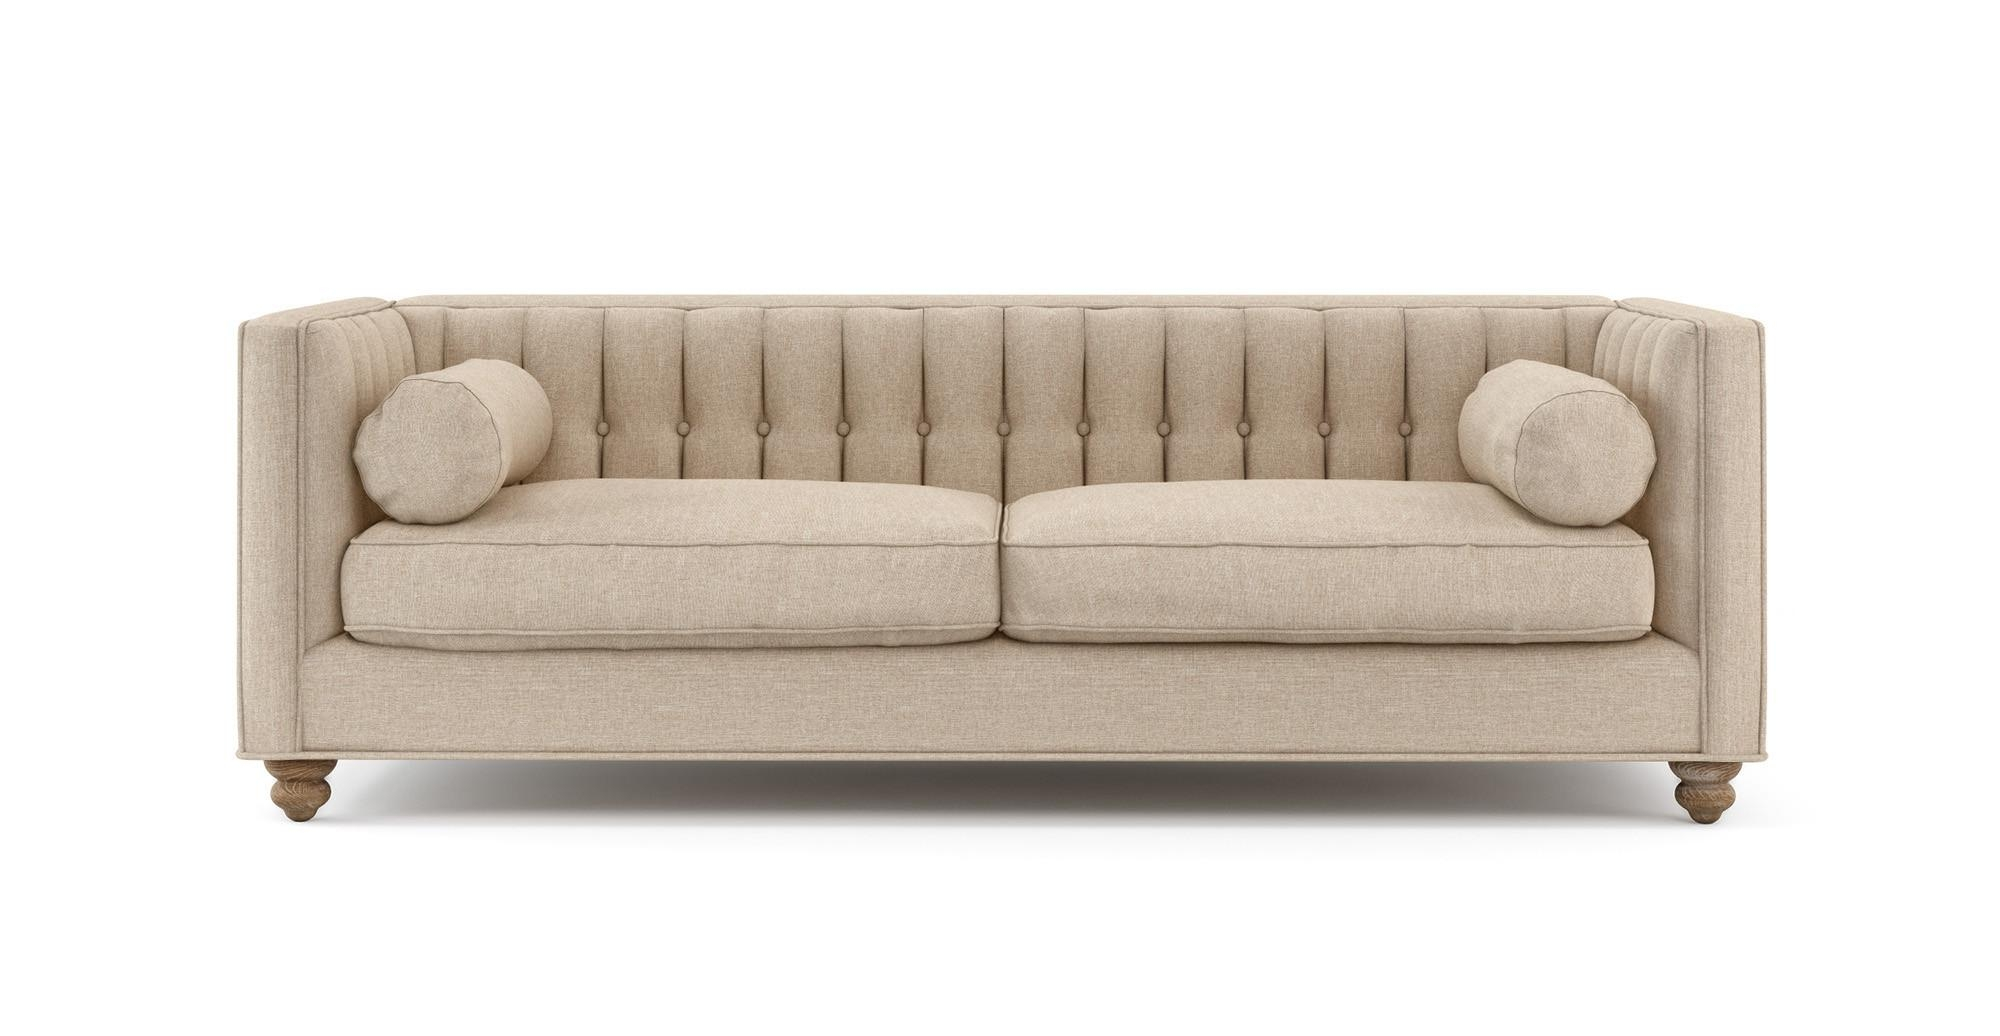 Three Seater Sofa 15 With Three Seater Sofa | Jinanhongyu Inside 3 Seater Sofas For Sale (View 4 of 21)